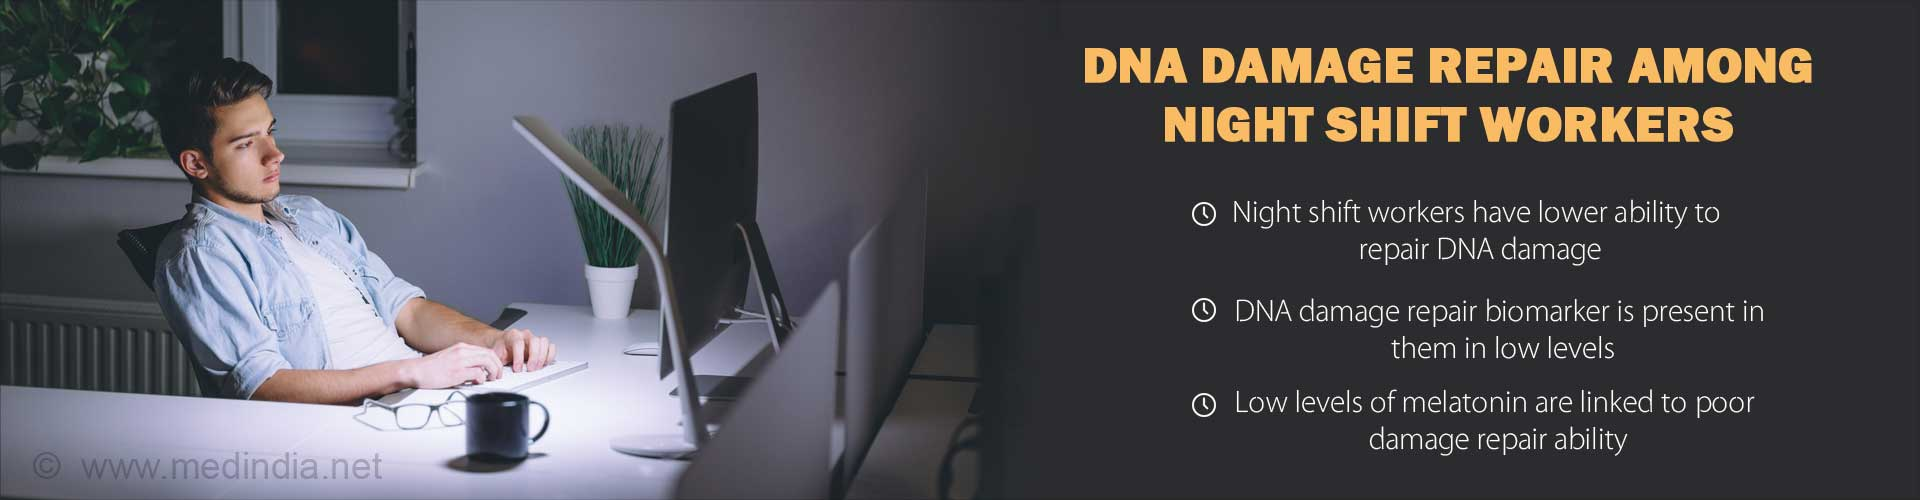 Working at Night Will Affect Your Body's Ability to Repair DNA Damage